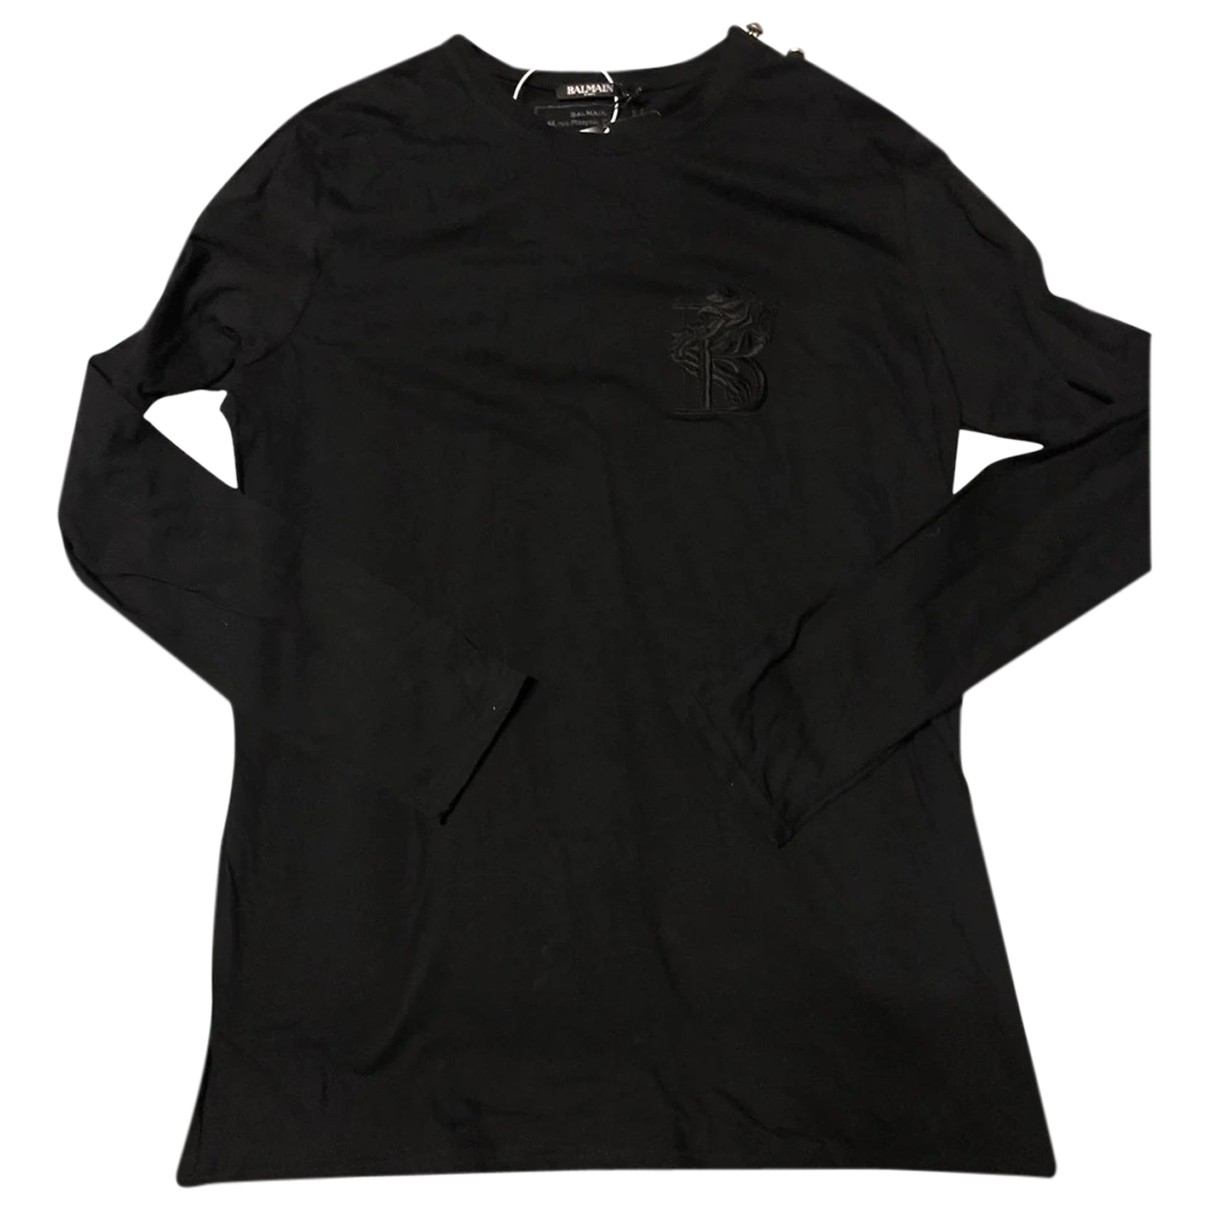 Balmain \N Black Cotton Knitwear & Sweatshirts for Men XXL International